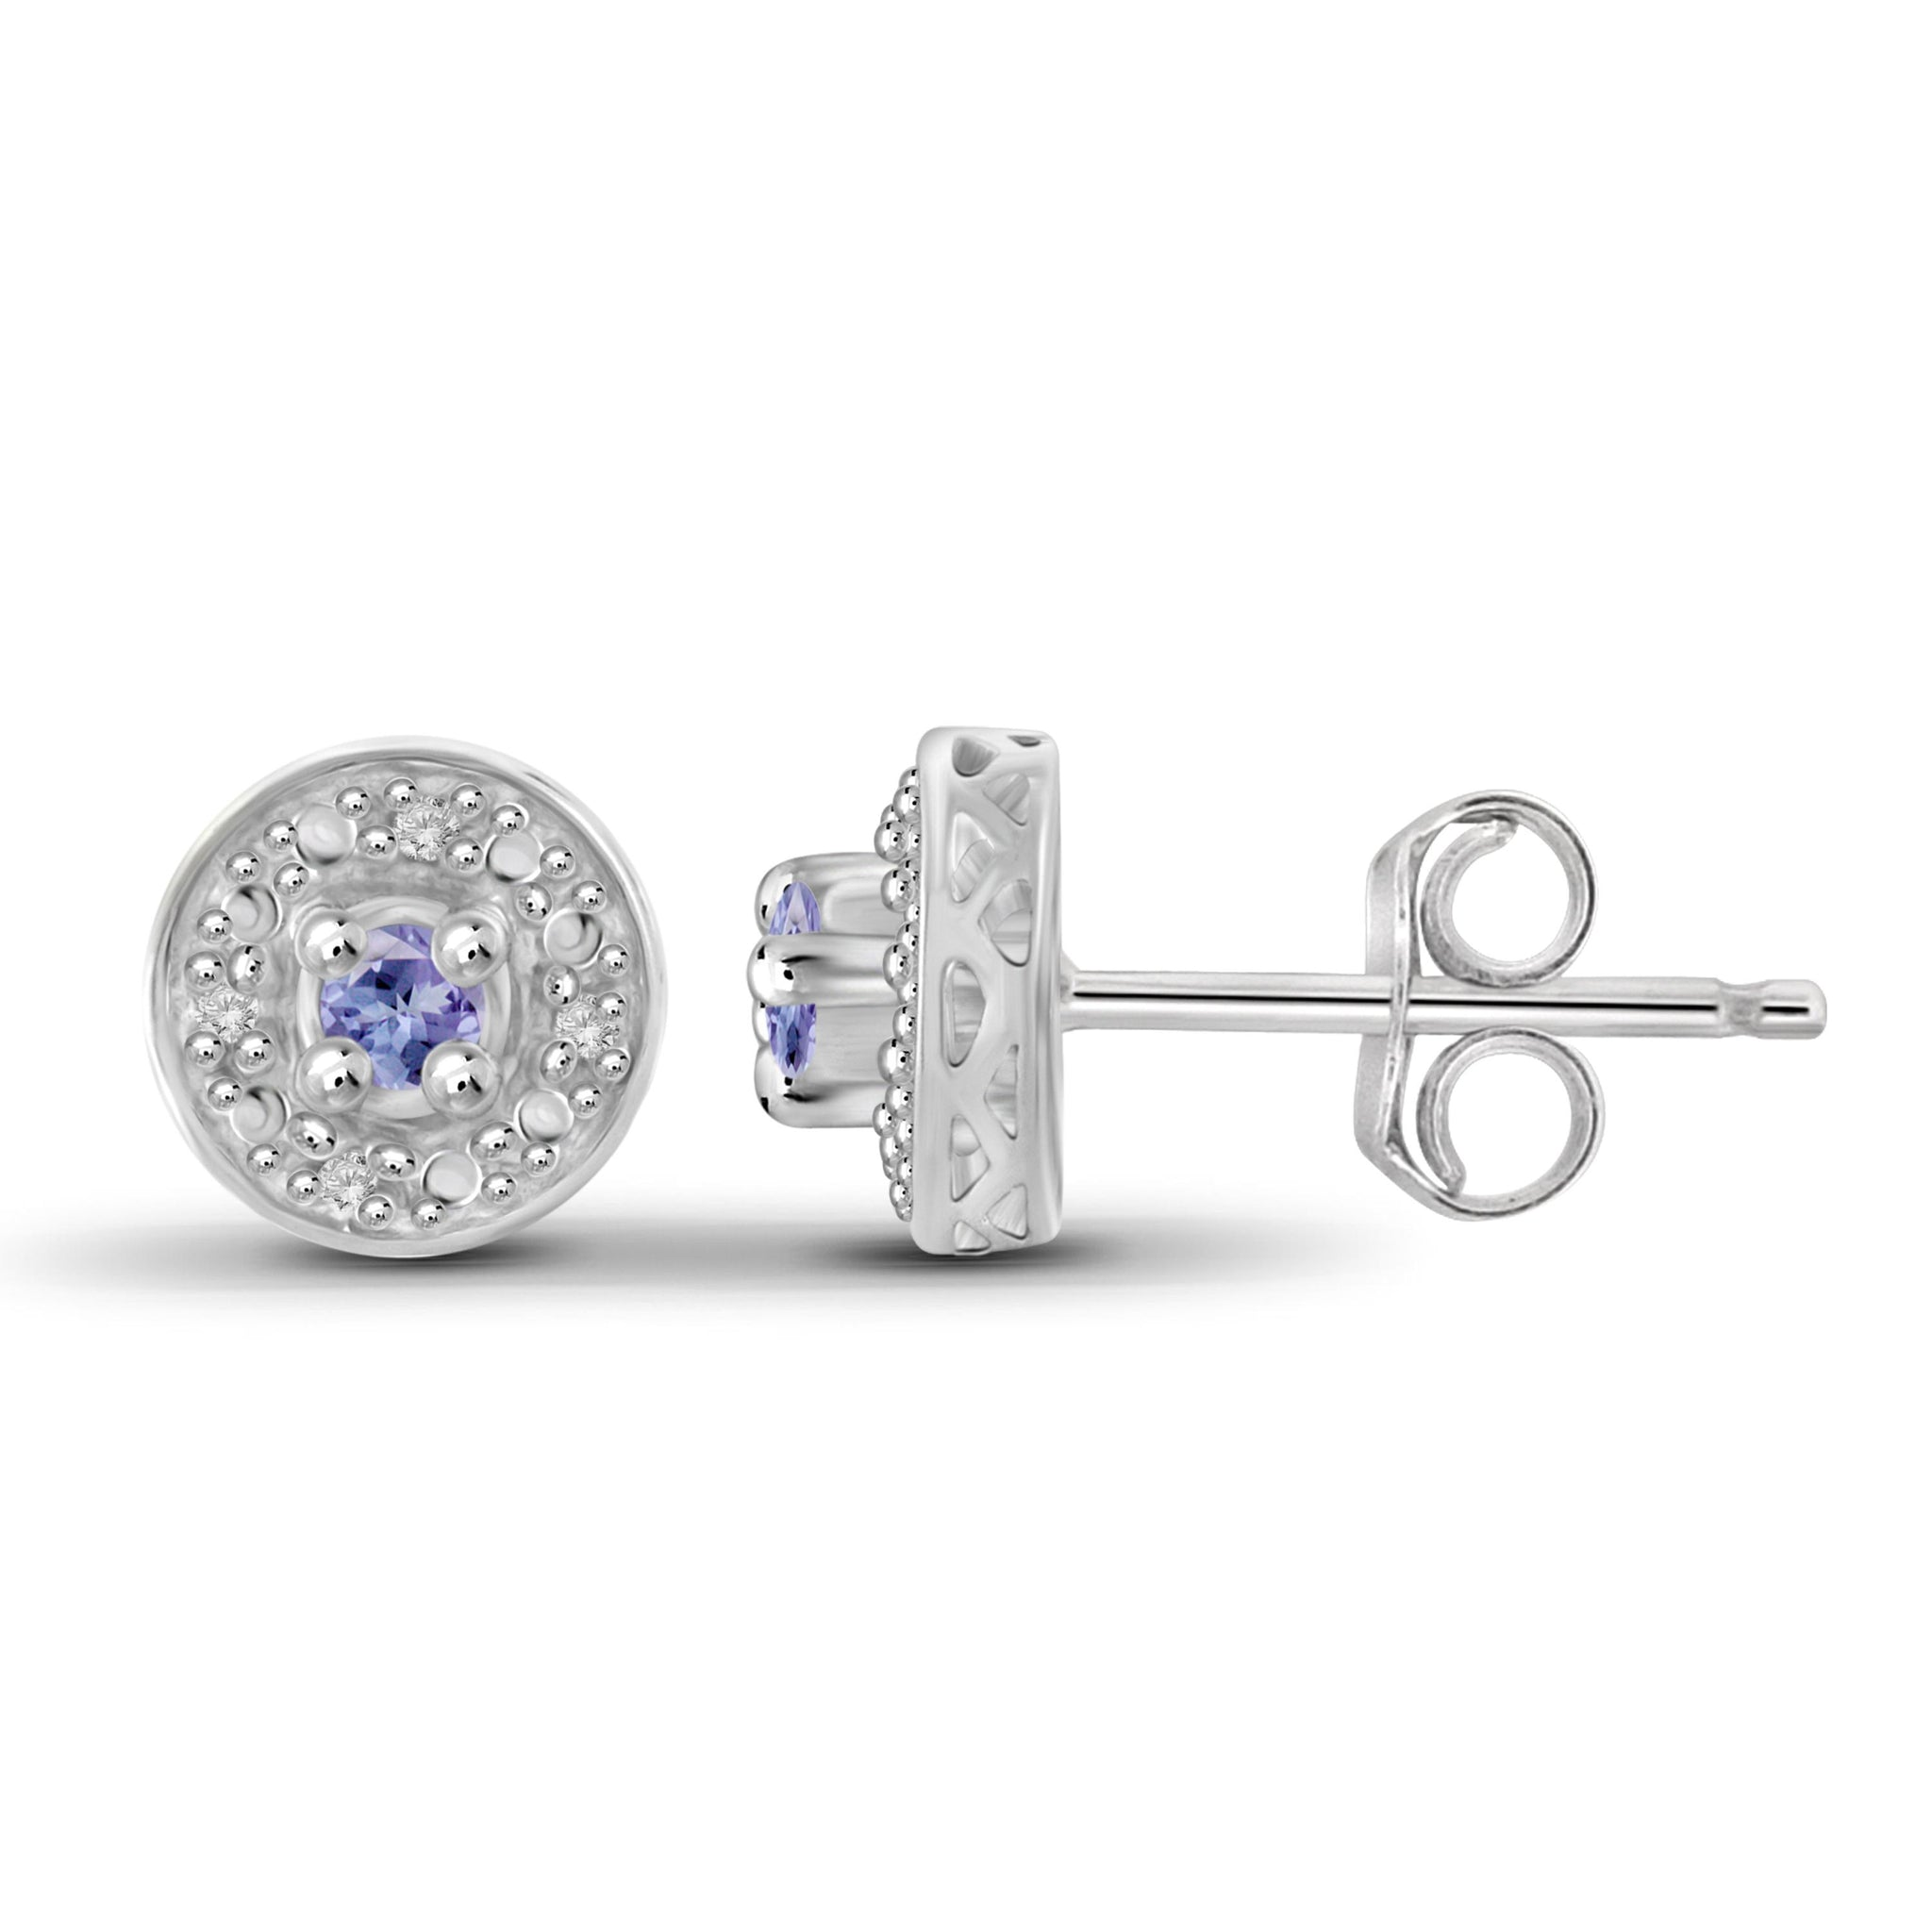 JewelonFire 1/7 Carat T.G.W. Tanzanite and White Diamond Accent Sterling Silver Halo Earrings - Assorted Colors